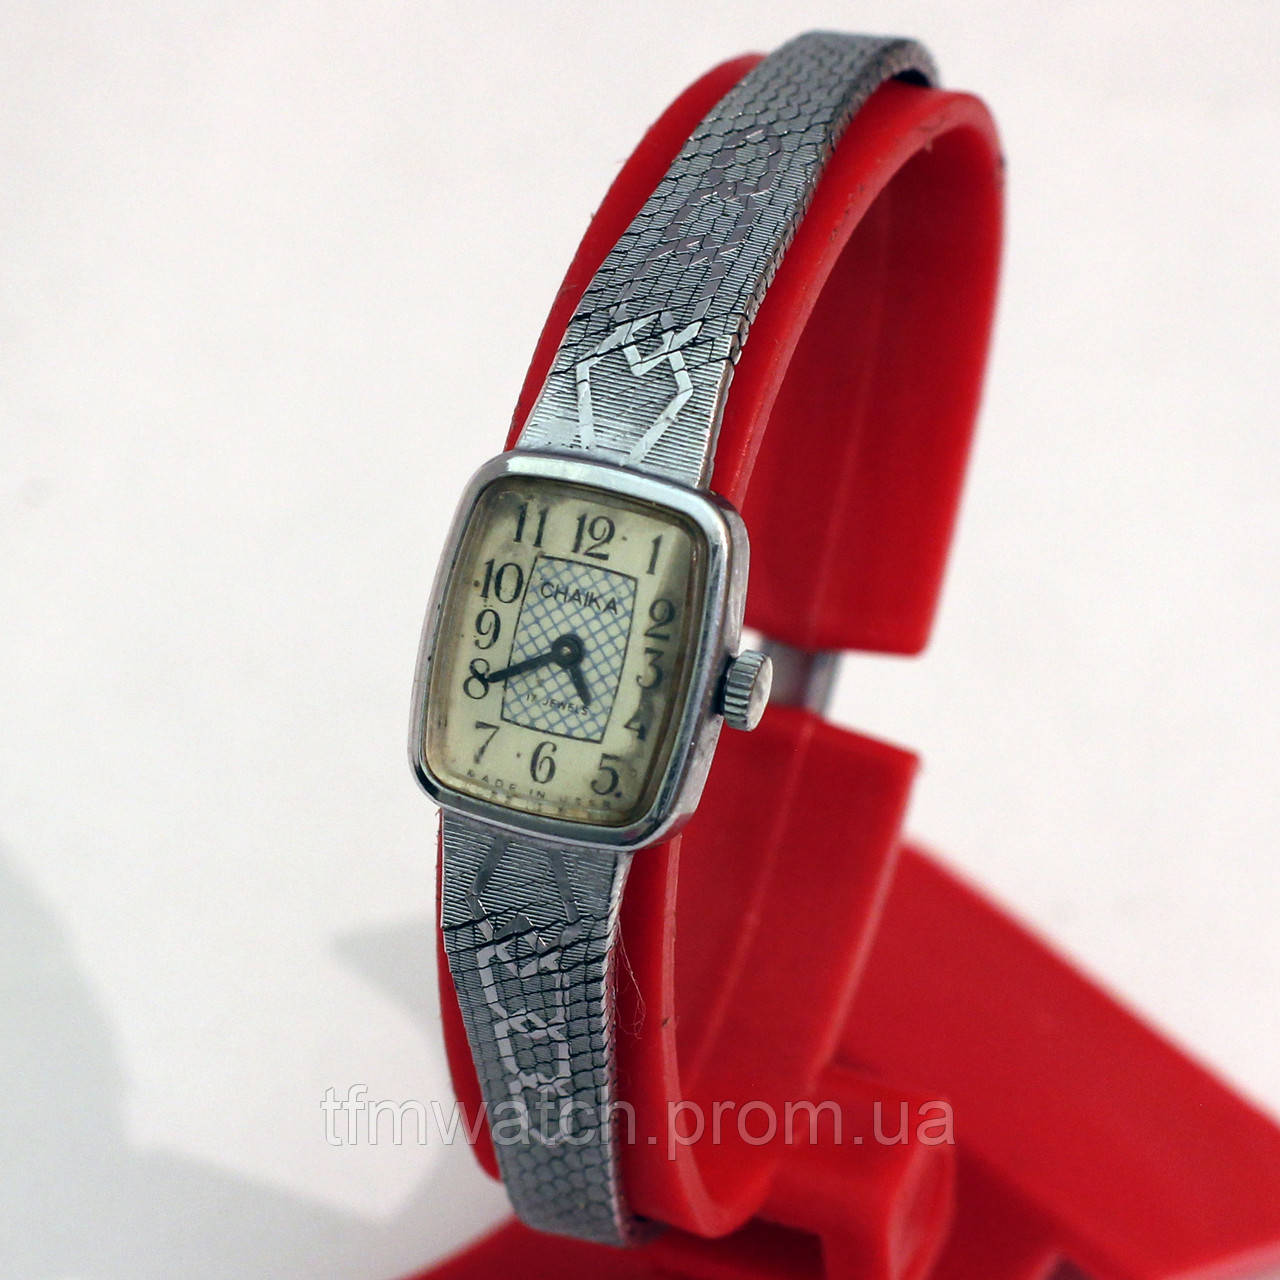 Chaika made in USSR